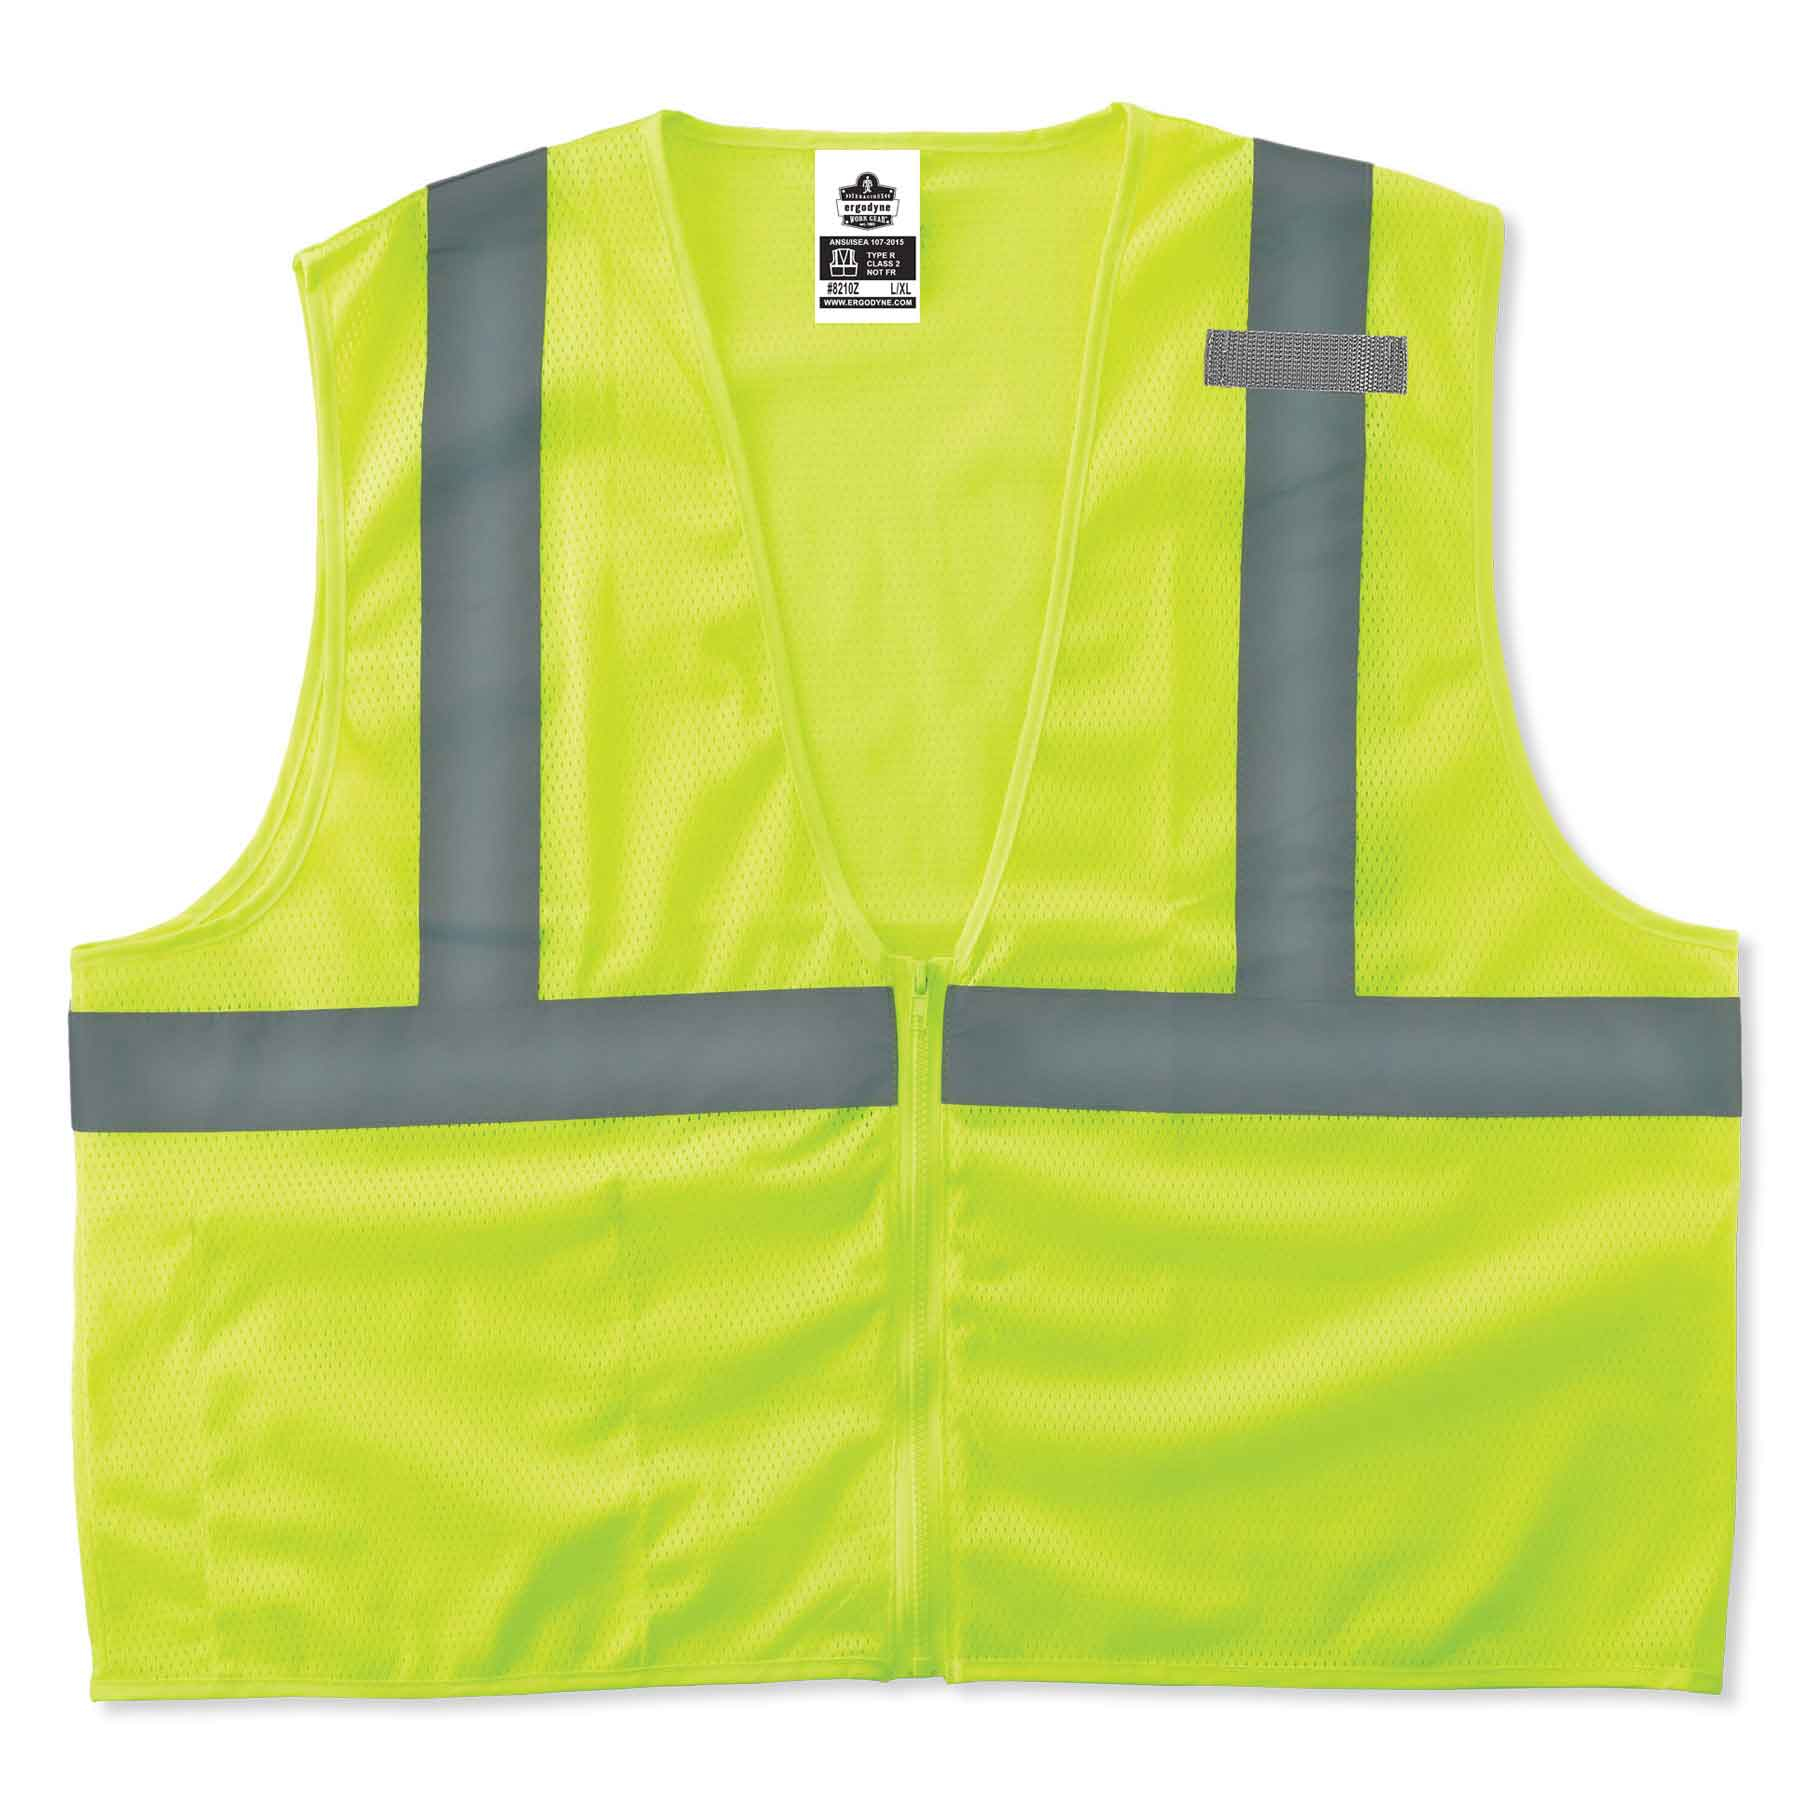 GloWear 8210Z ANSI Economy High Visibility Lime Reflective Safety Vest, Zipper Closure, Large/X-Large